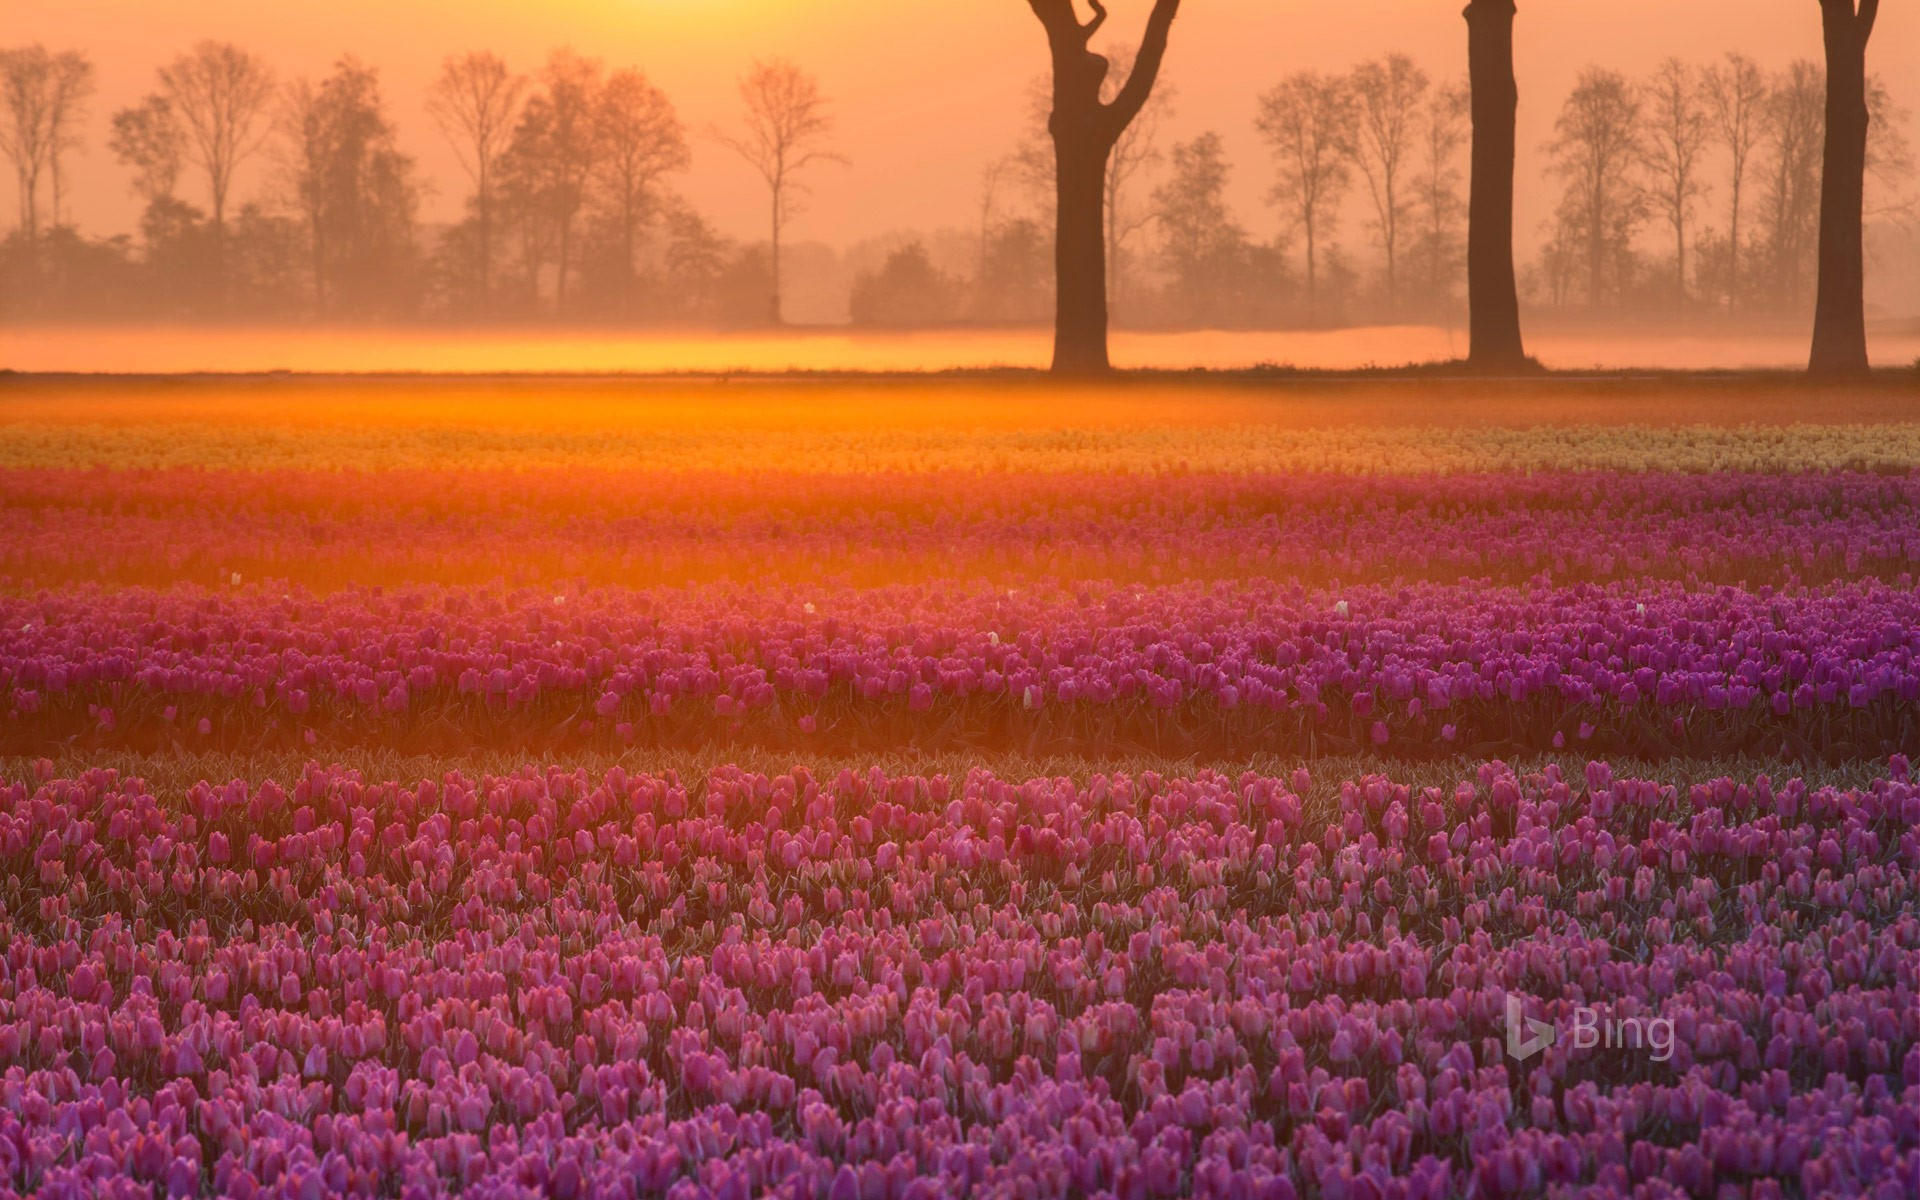 Tulips near the village of Grolloo in Drenthe province, Netherlands